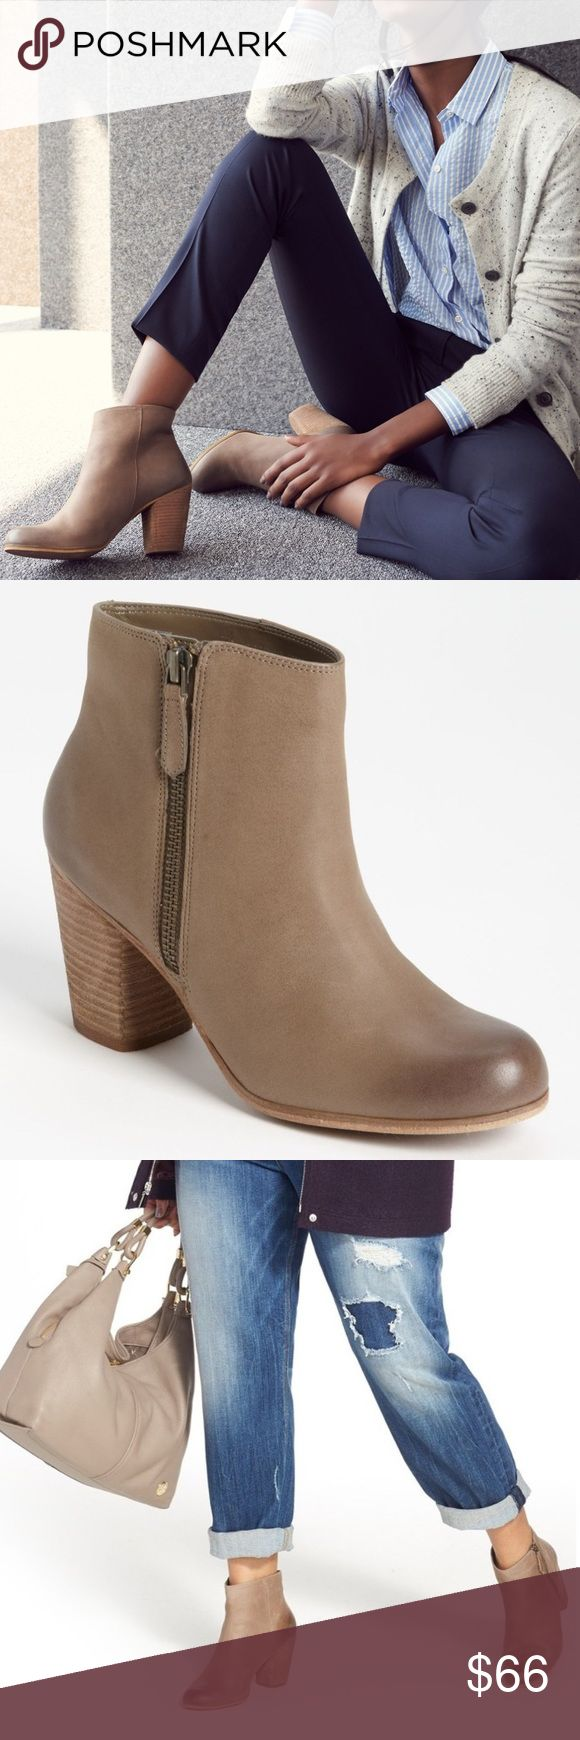 BP beige taupe light tan leather ankle booties Brand new in BP box (just not original BP box). Originally selling at Nordstrom. Size 9.5. Genuine leather. Zipper on the outside of the ankle. Super popular and loved bootie! Additional details in the 7th picture. BP beige taupe light tan leather ankle booties. Nordstrom Shoes Ankle Boots & Booties